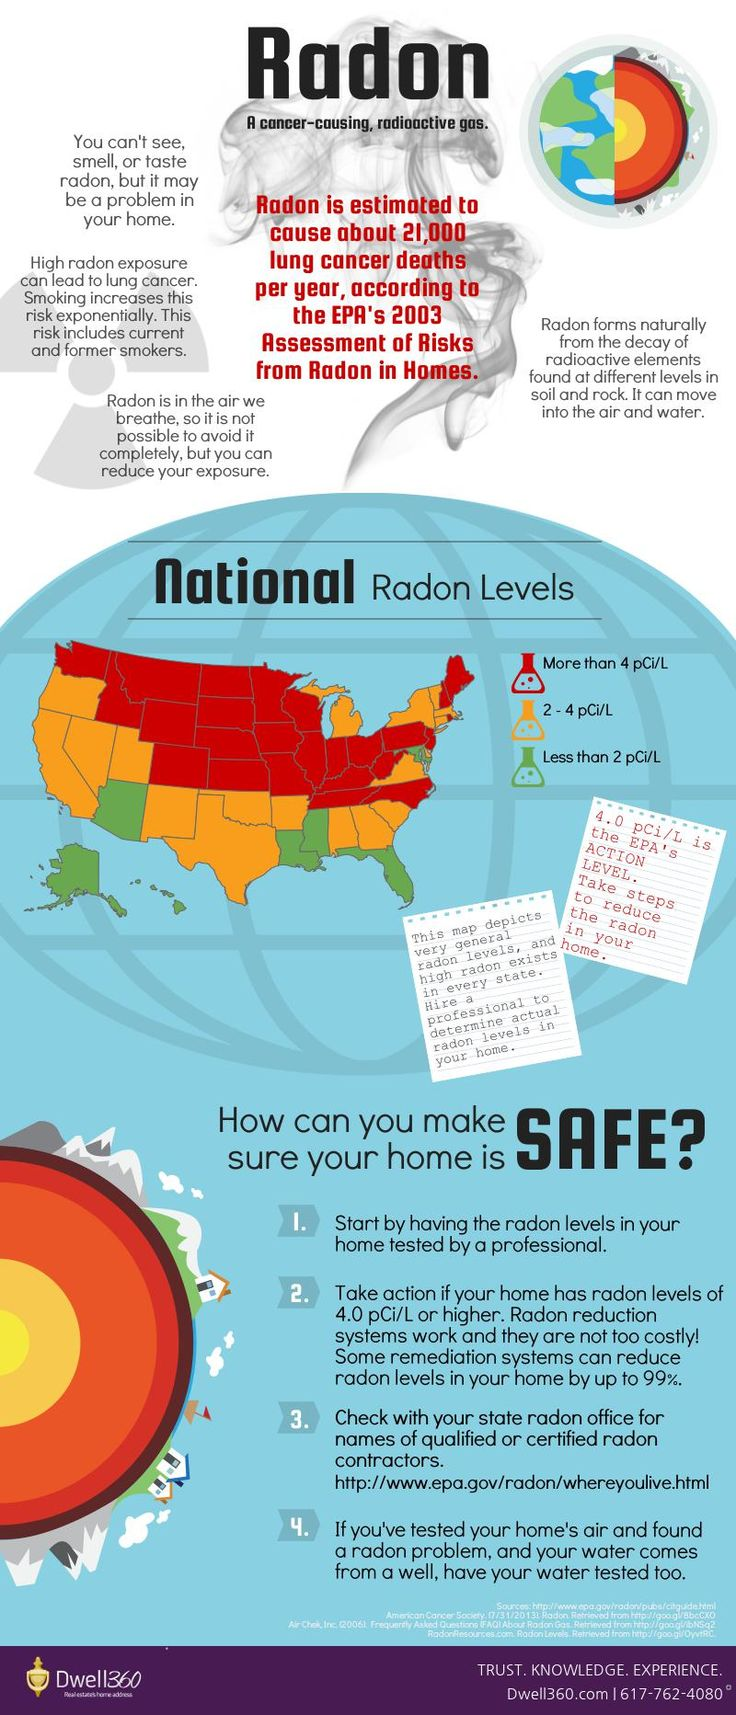 How to fool a radon test - Protect Yourself From Radon